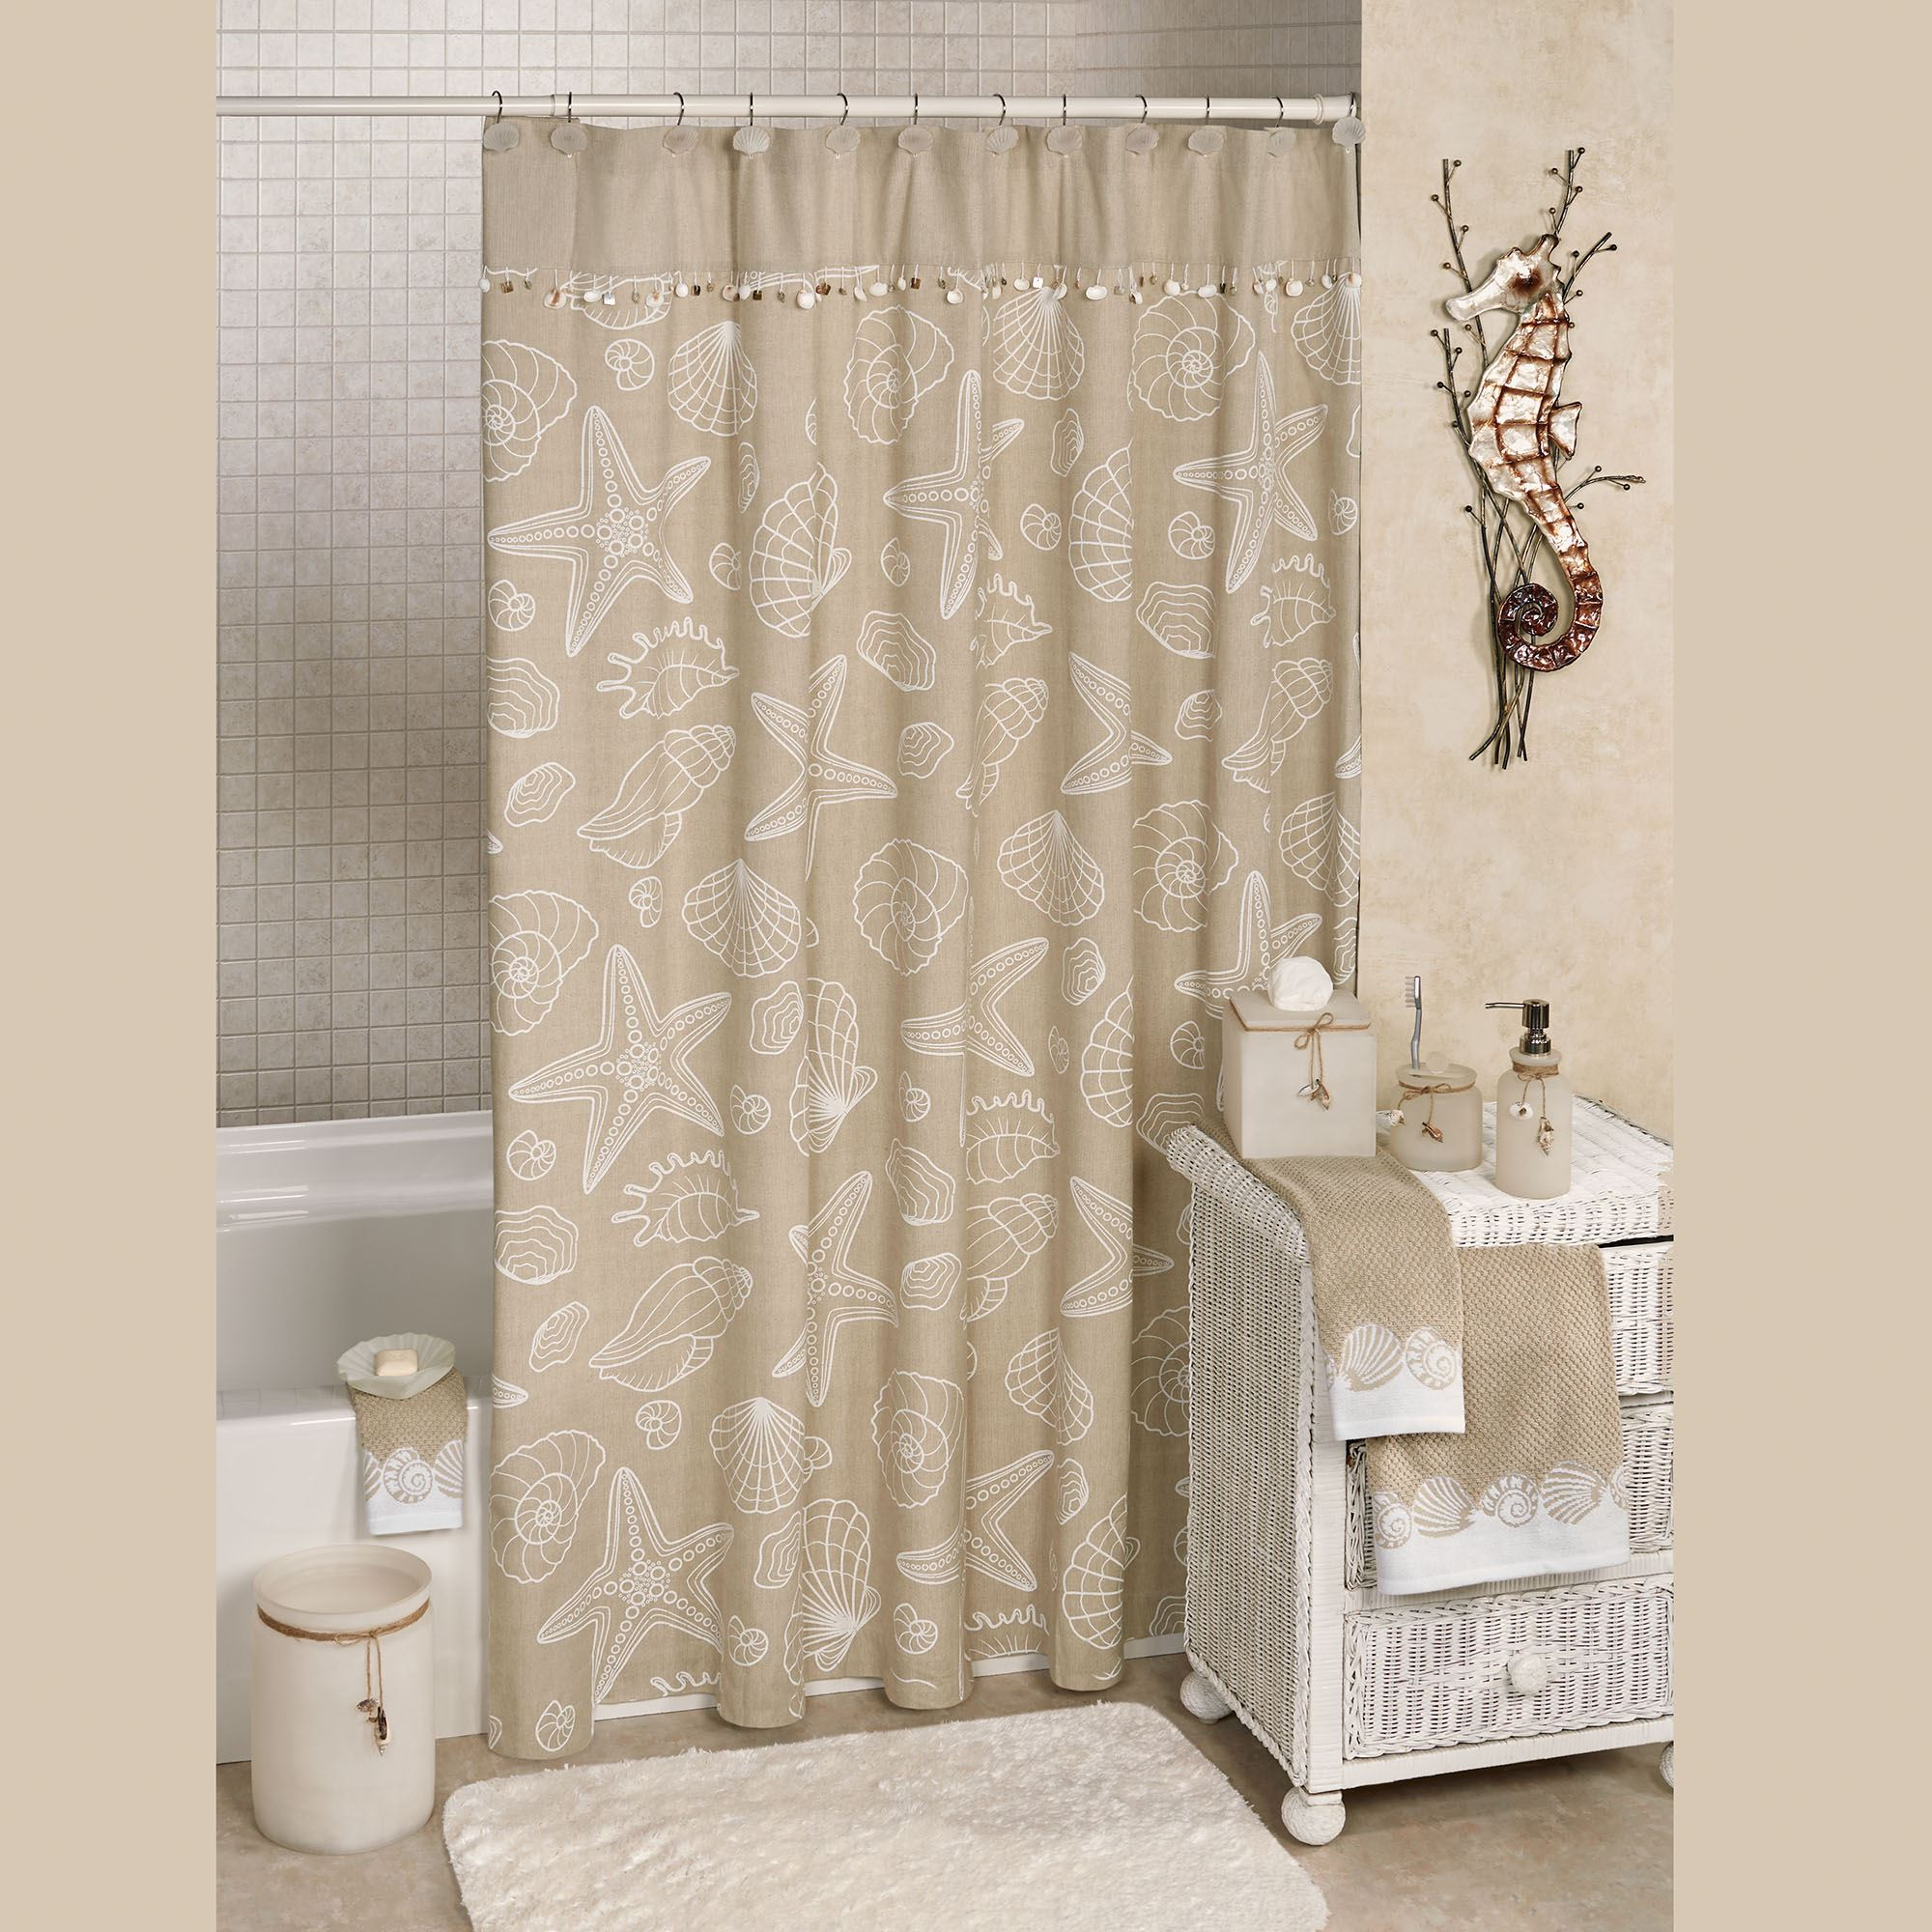 Ipanema Coastal Shower Curtain Dark Beige 70 X 72